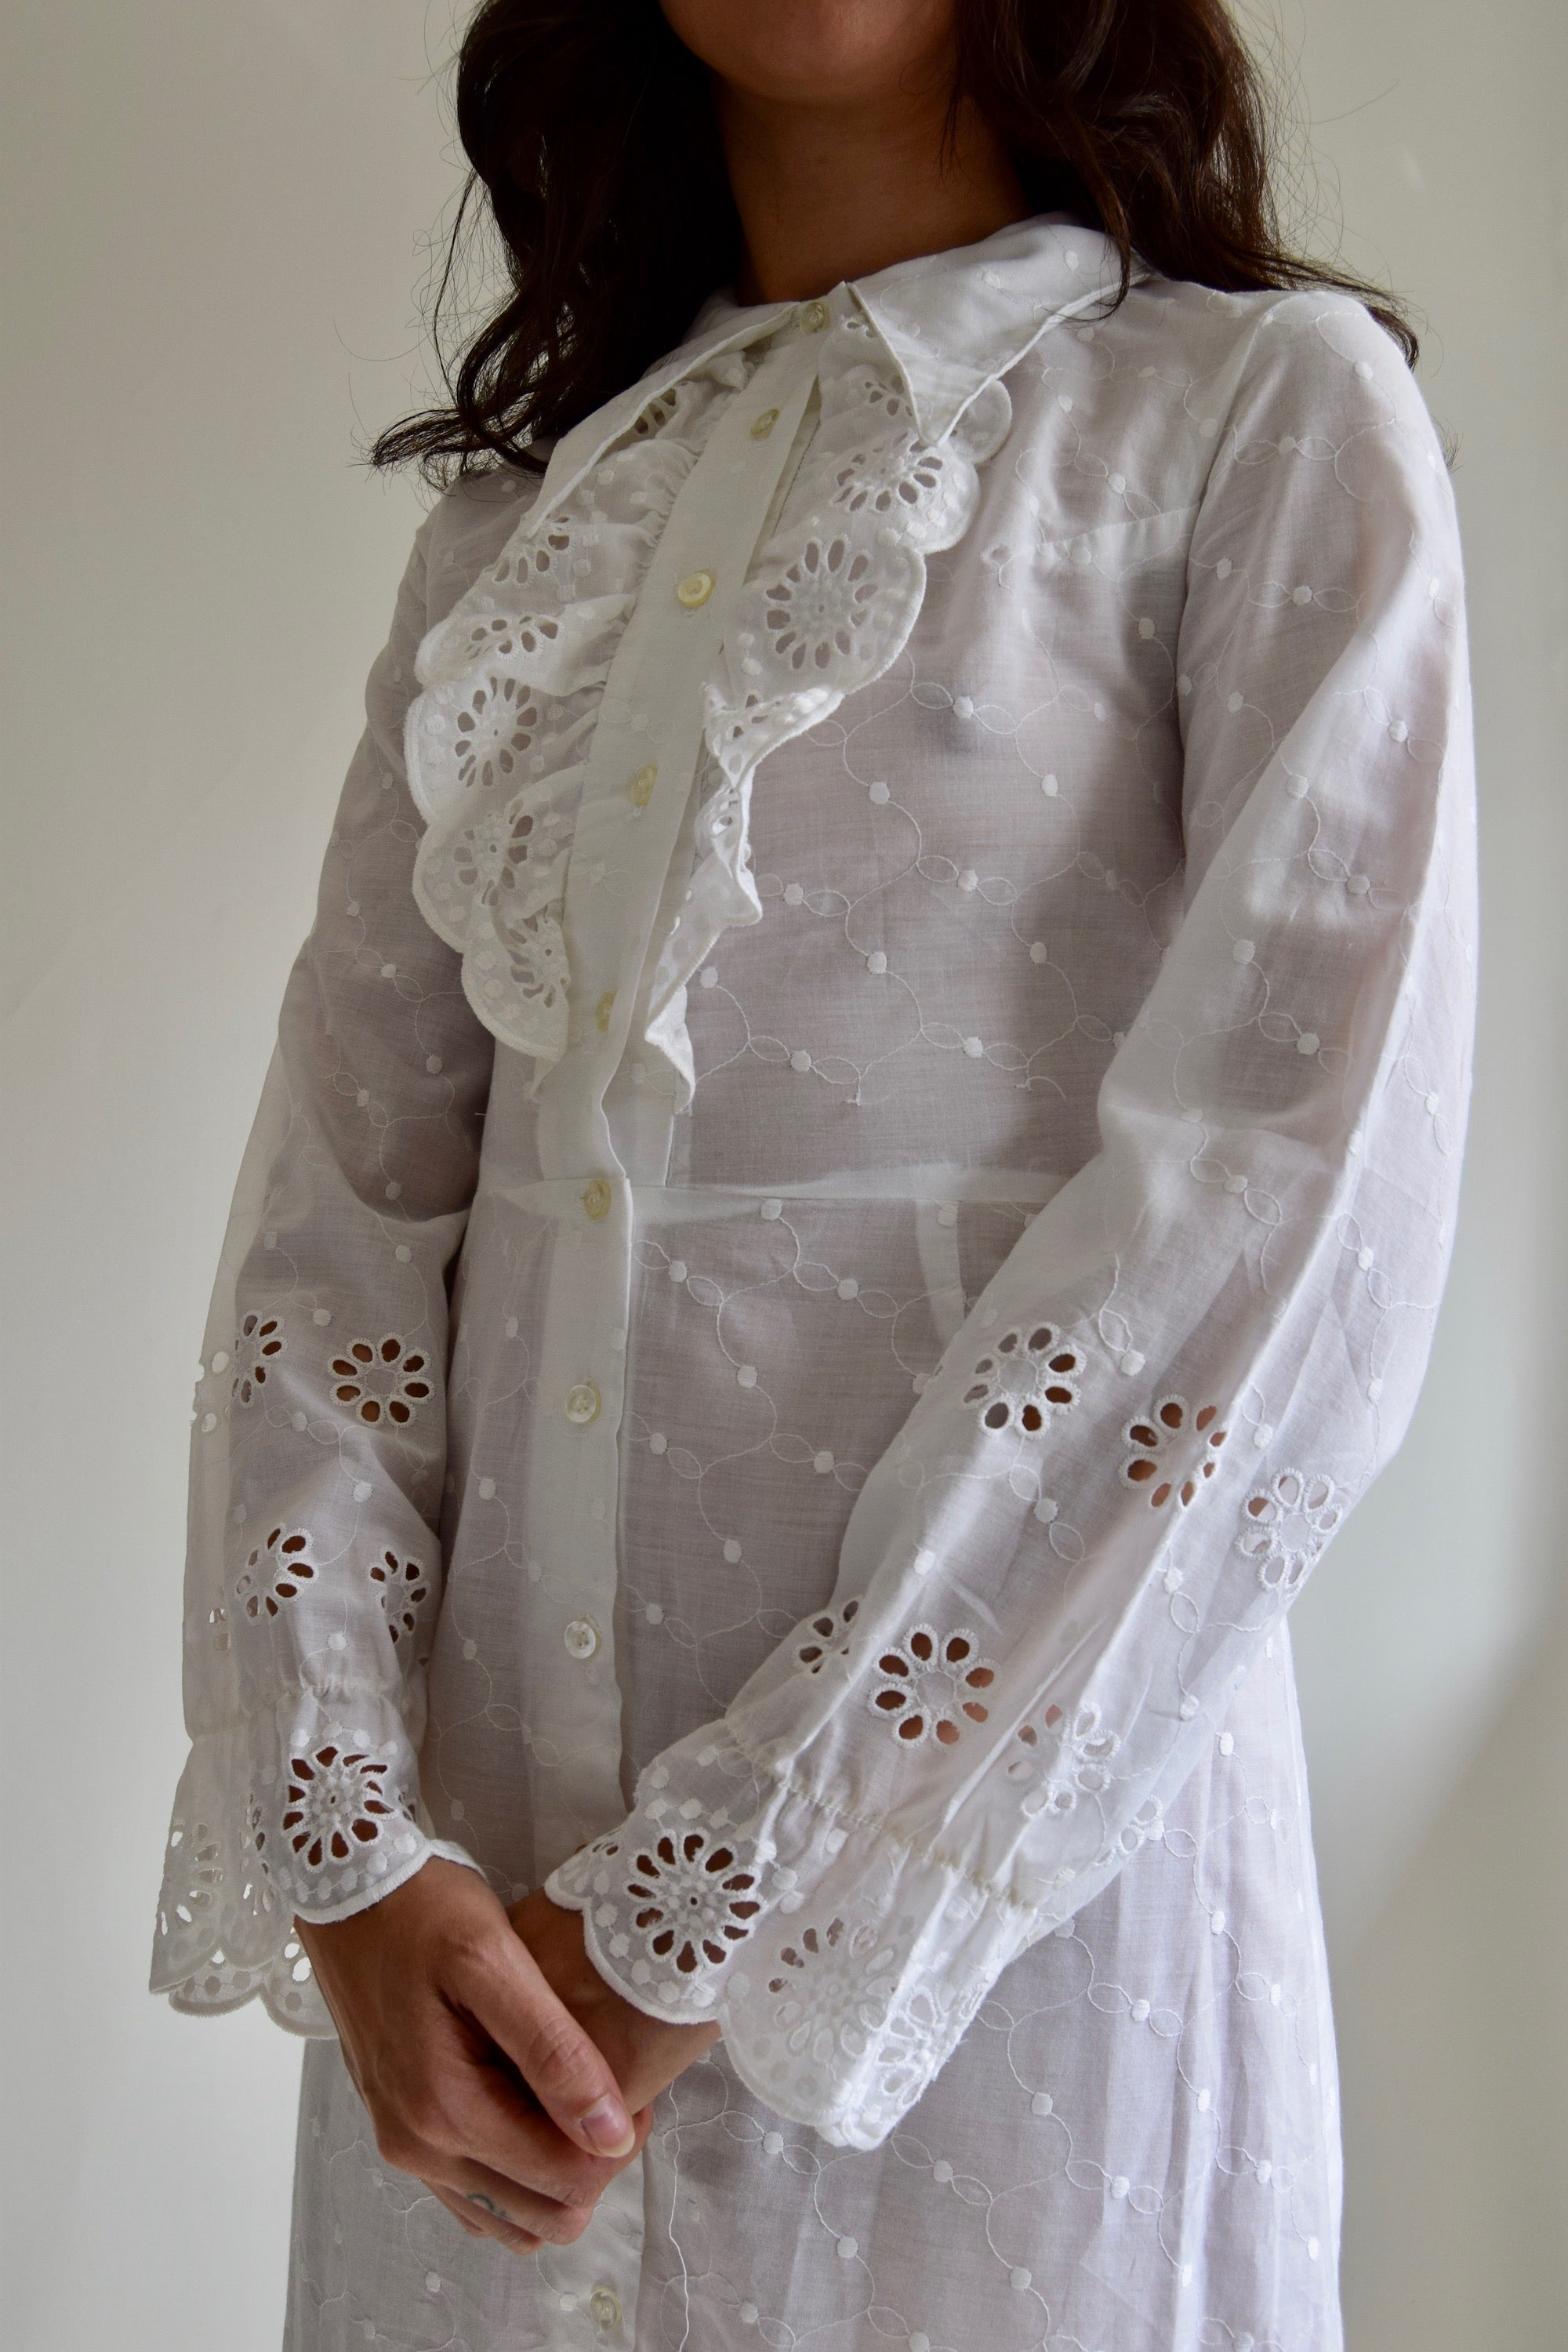 Vintage Ethereal Eyelet Lace Dress